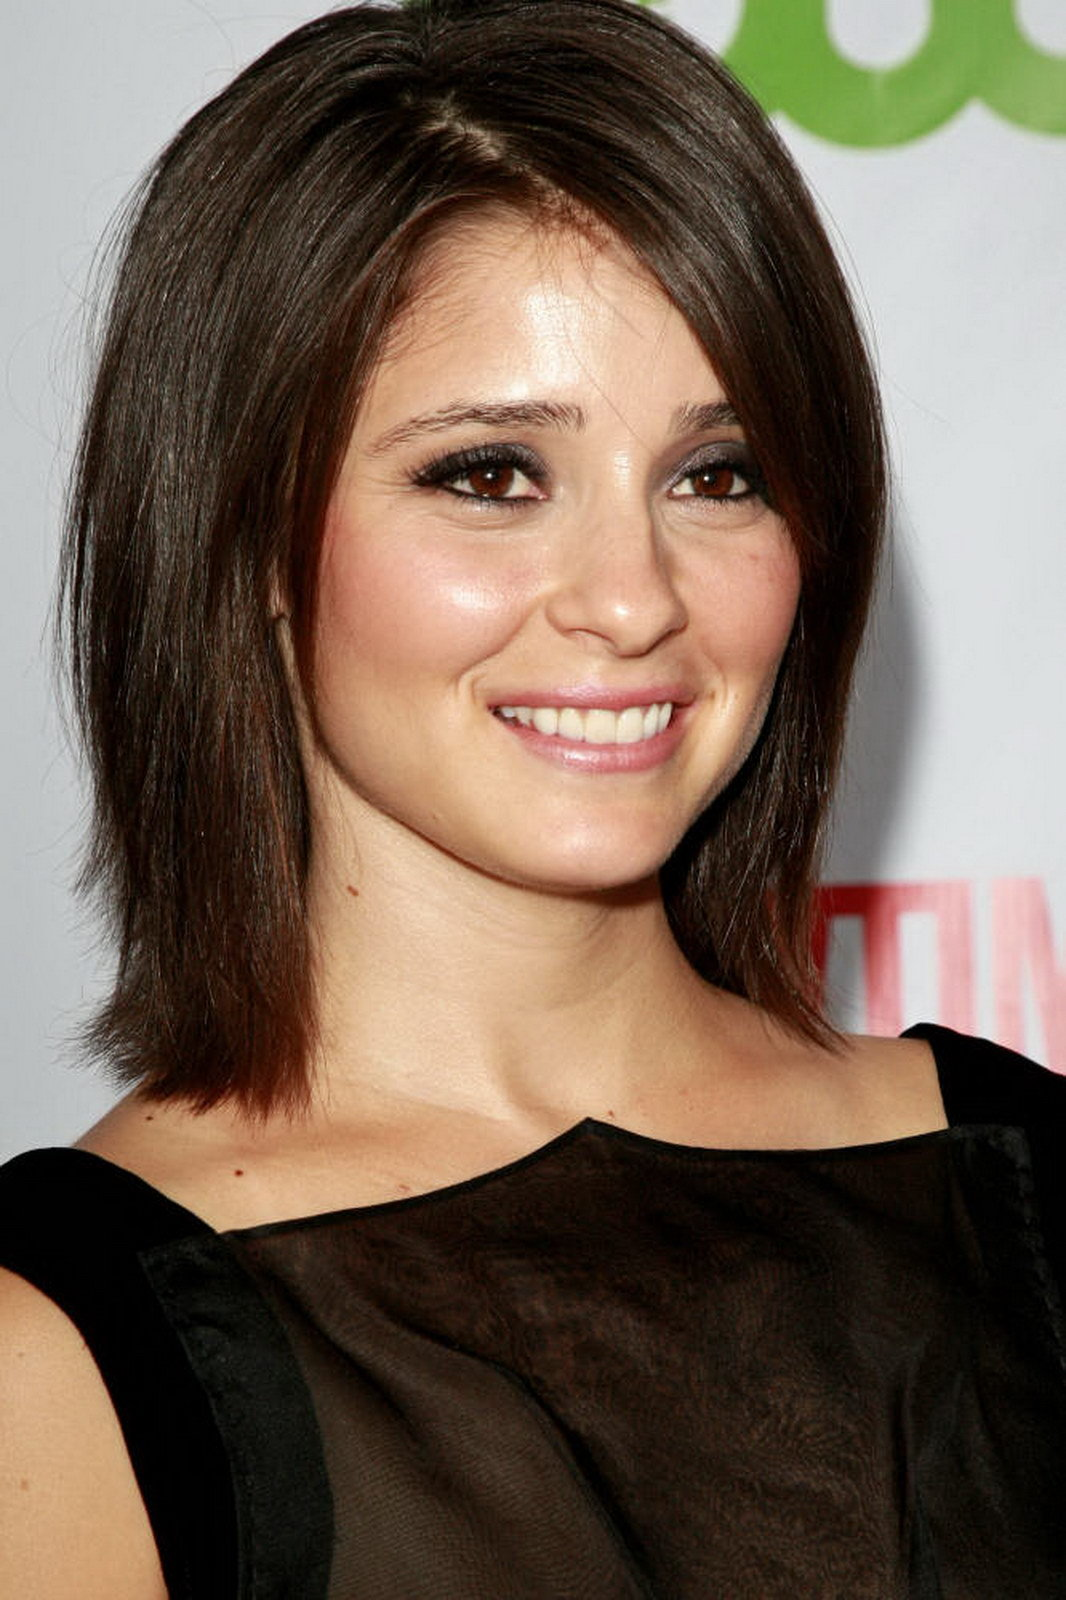 HOLLYWOOD ALL STARS: Shiri Appleby Profile,Bio and Pictures